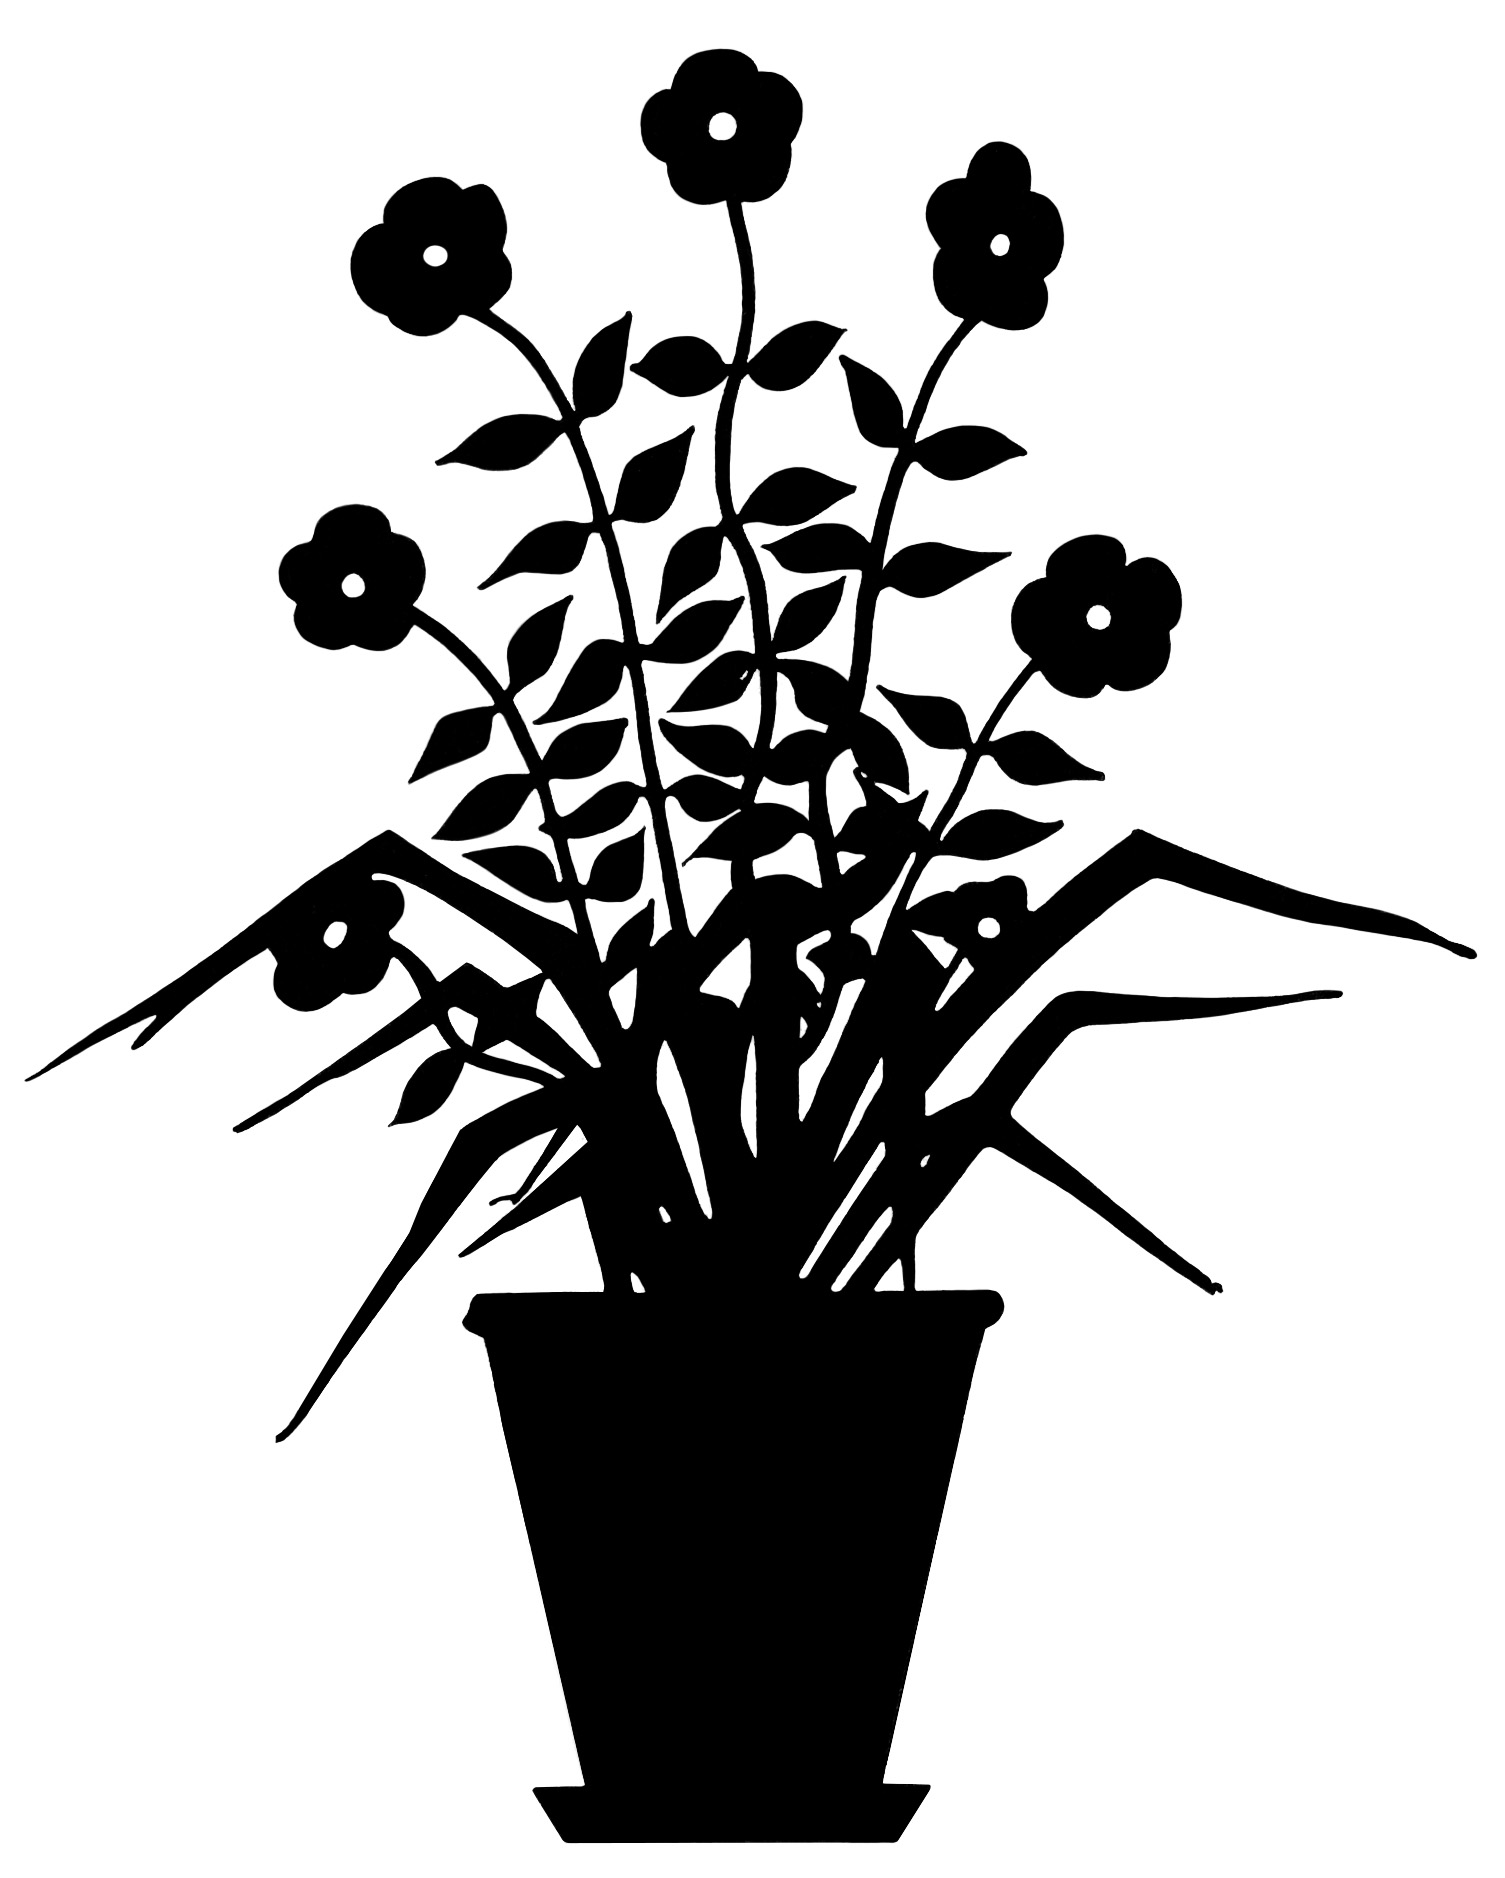 Drawn pot plant black and white And art flower flowering in